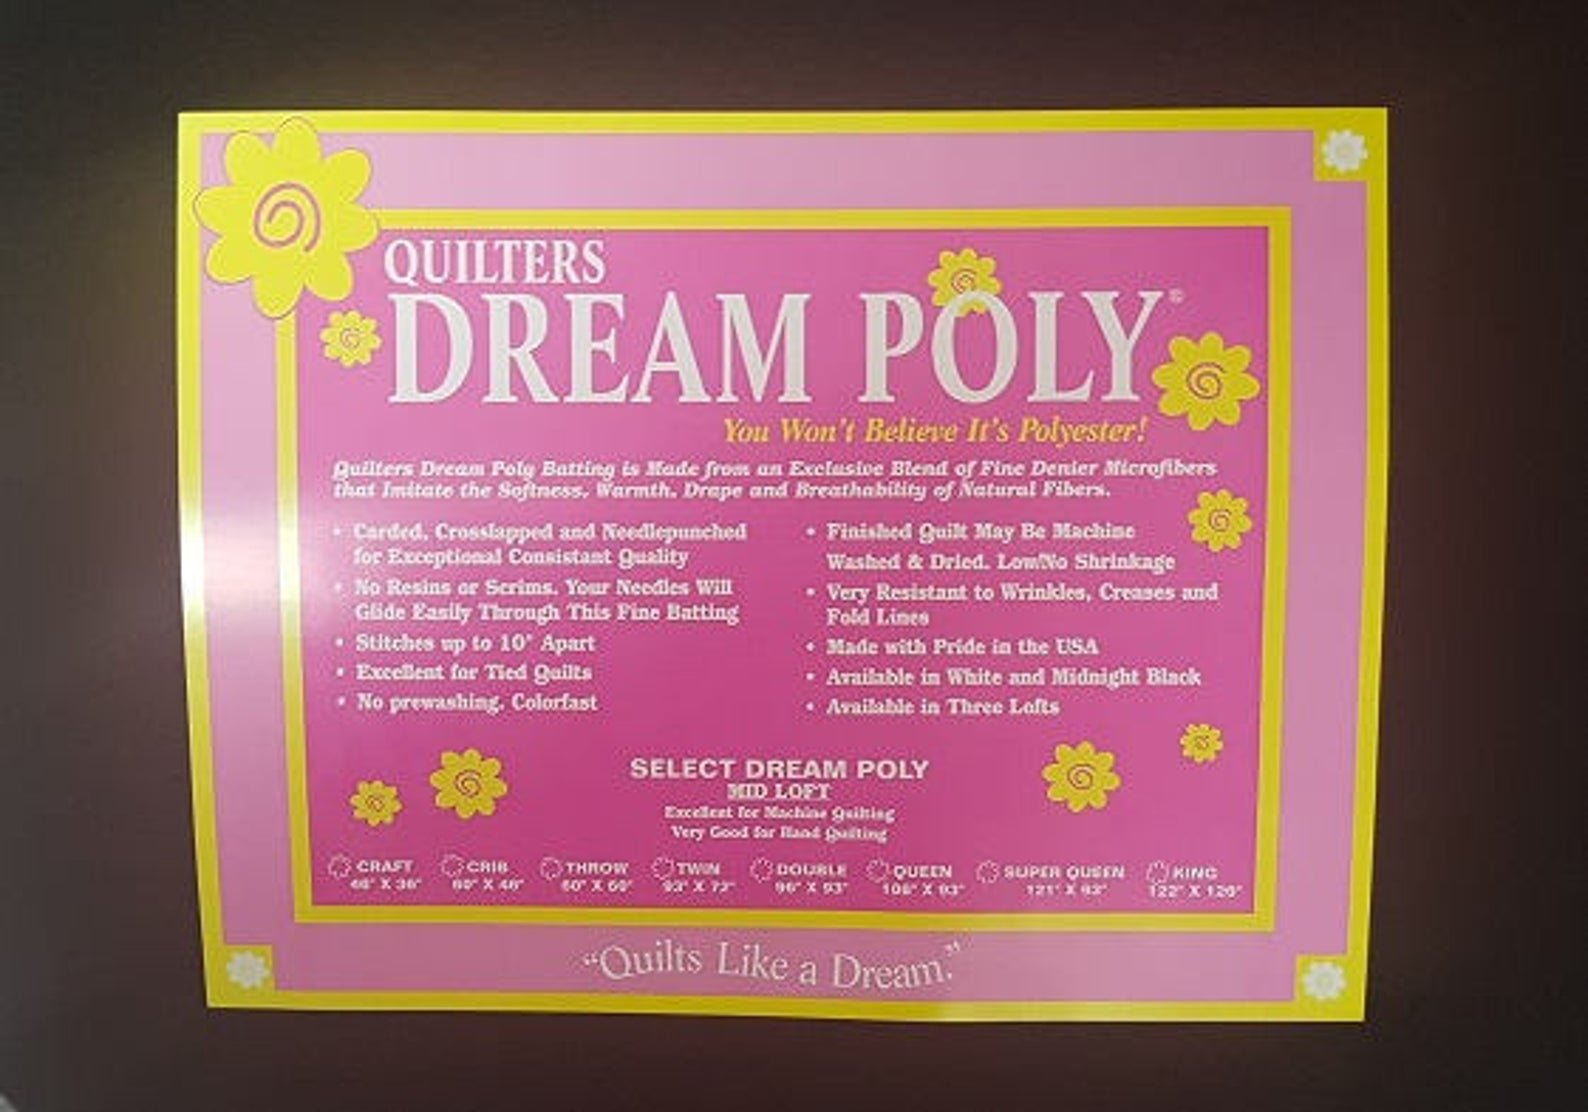 Quilters Dream Polyester Select Black Craft - 46 x 36